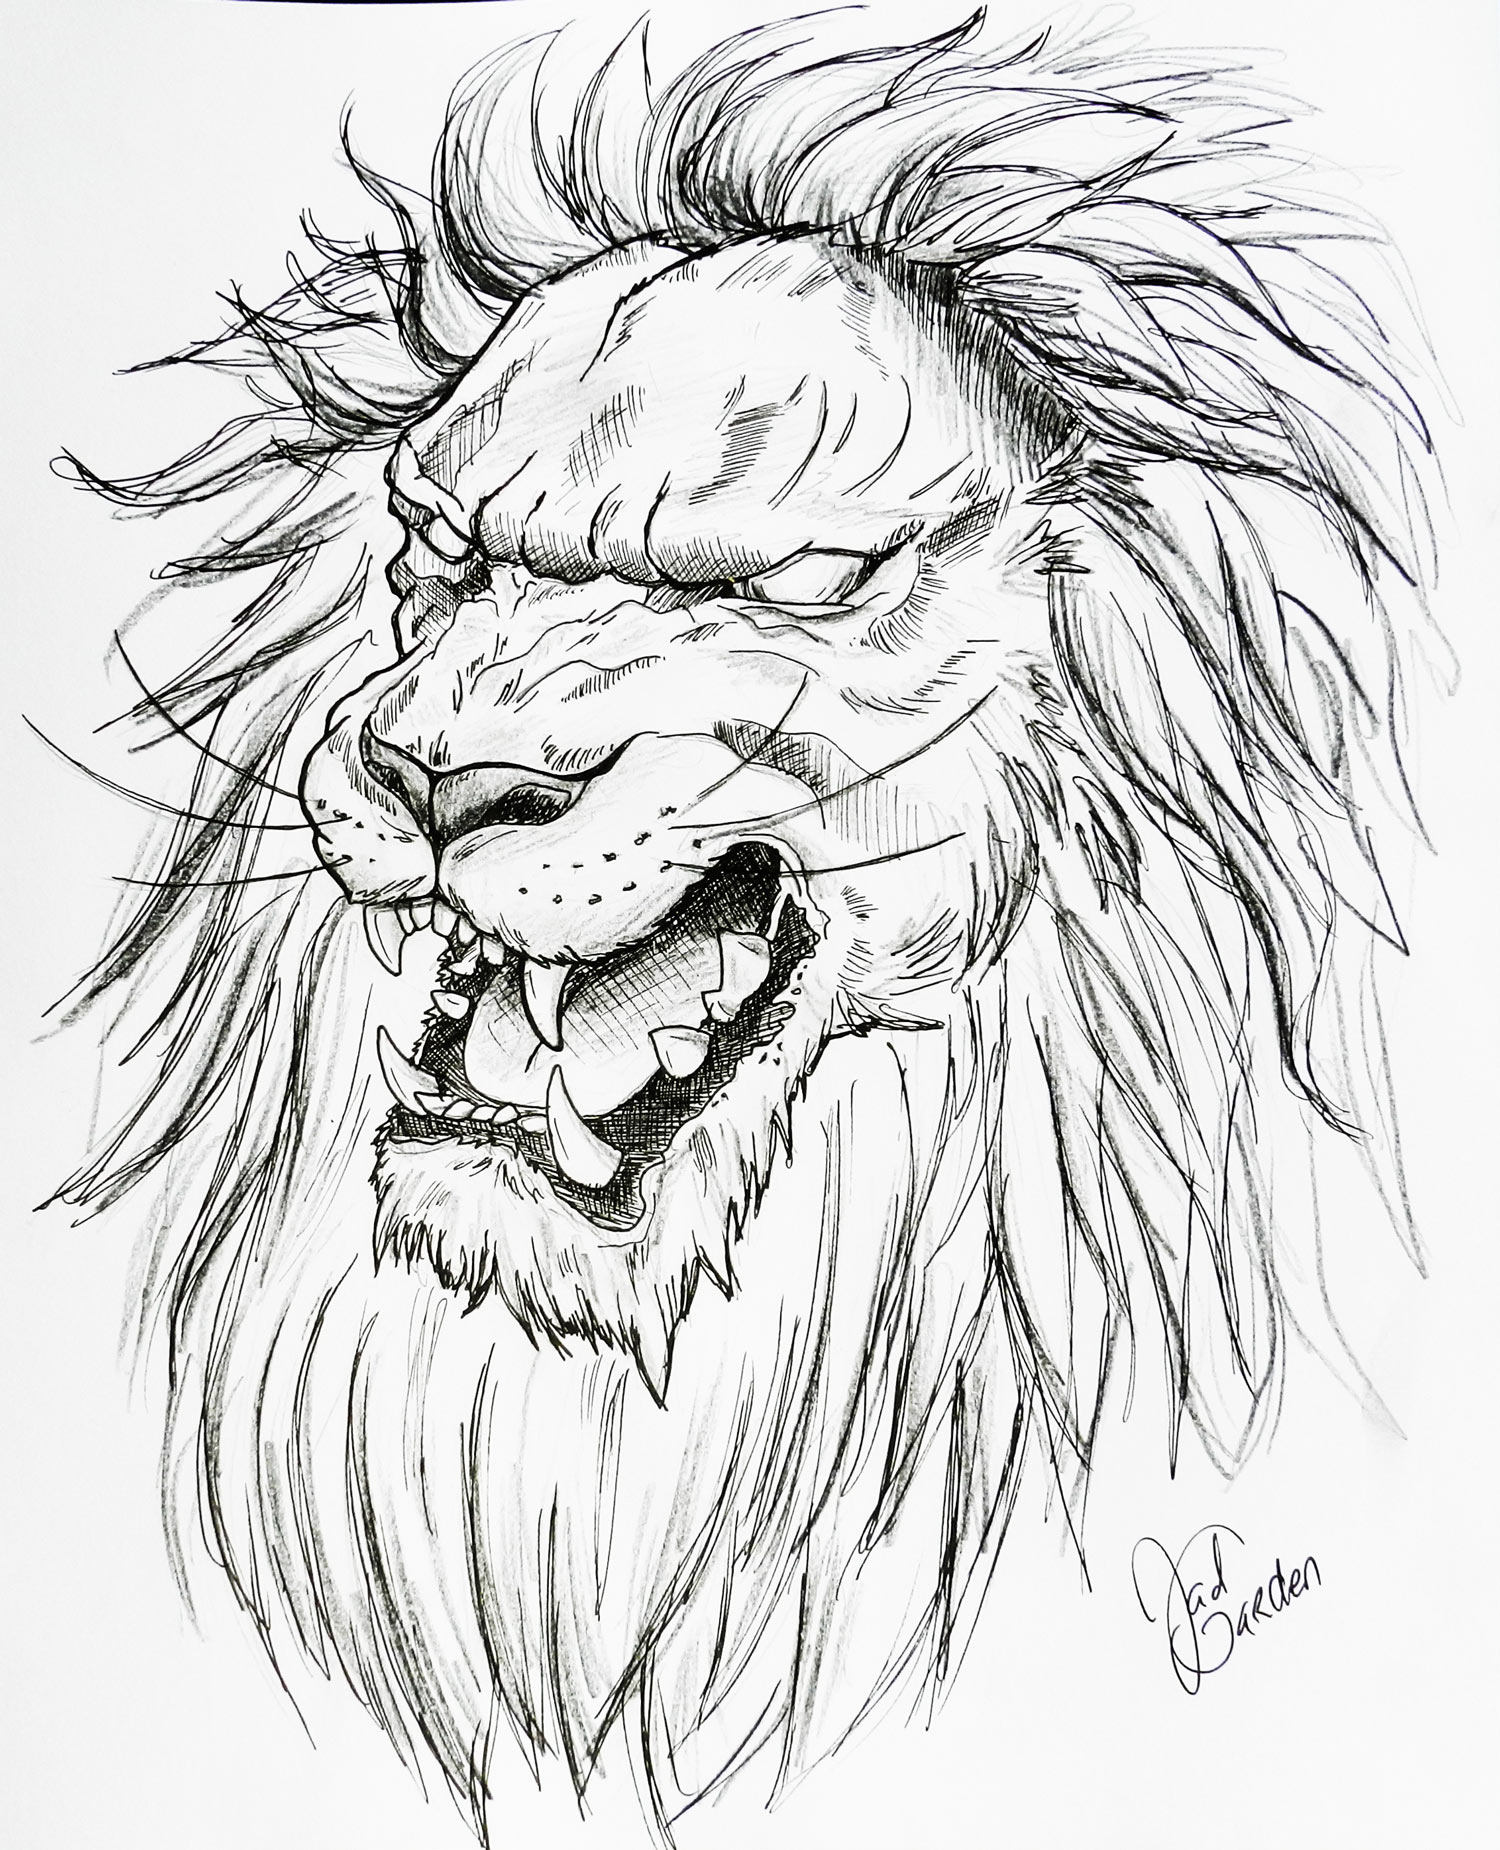 Dessin tatouages jadgarden cr ation site internet et dessin de tatouage - Coloriage tatouage ...